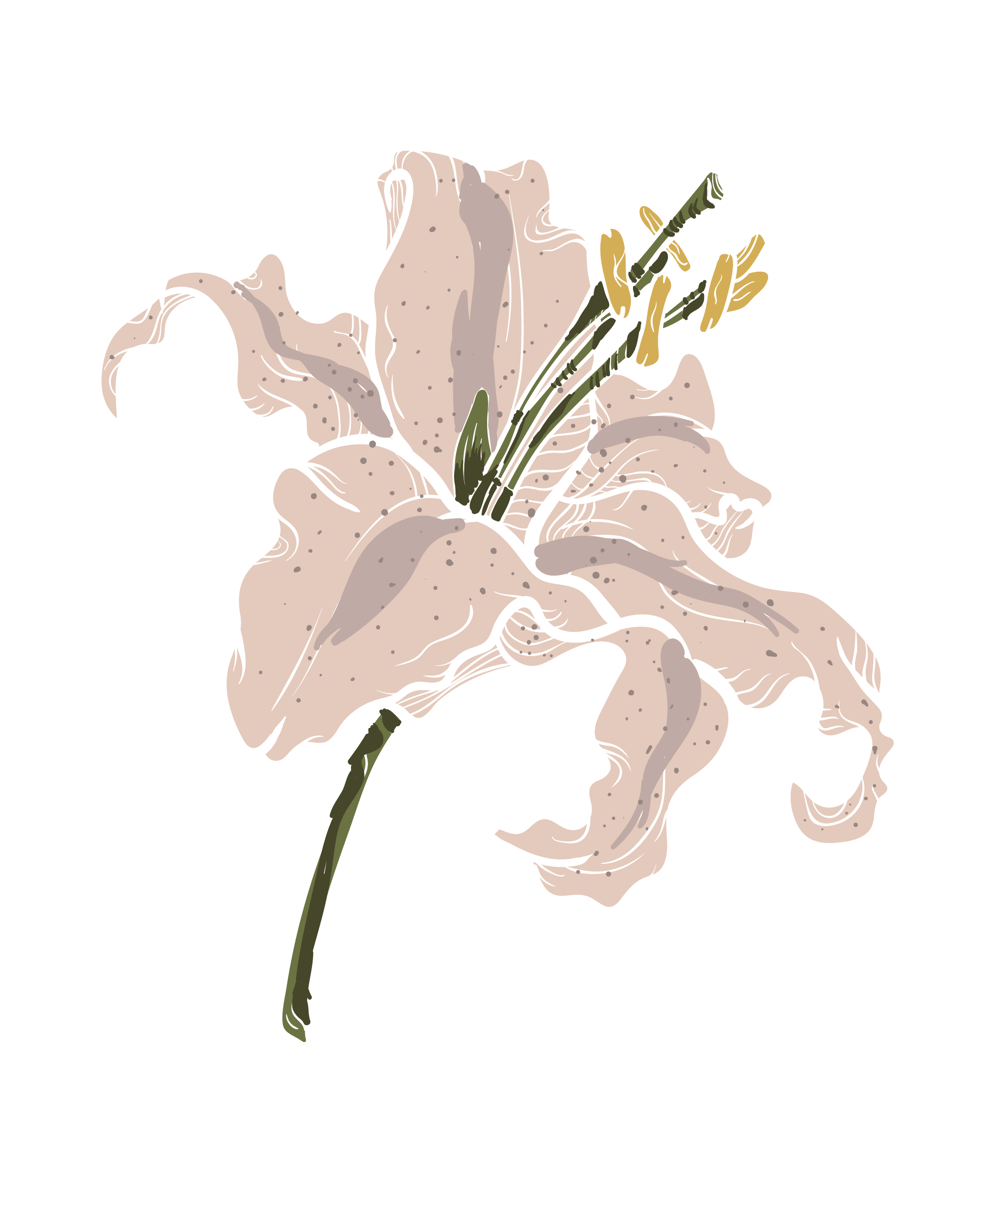 Lily - image 3 - student project